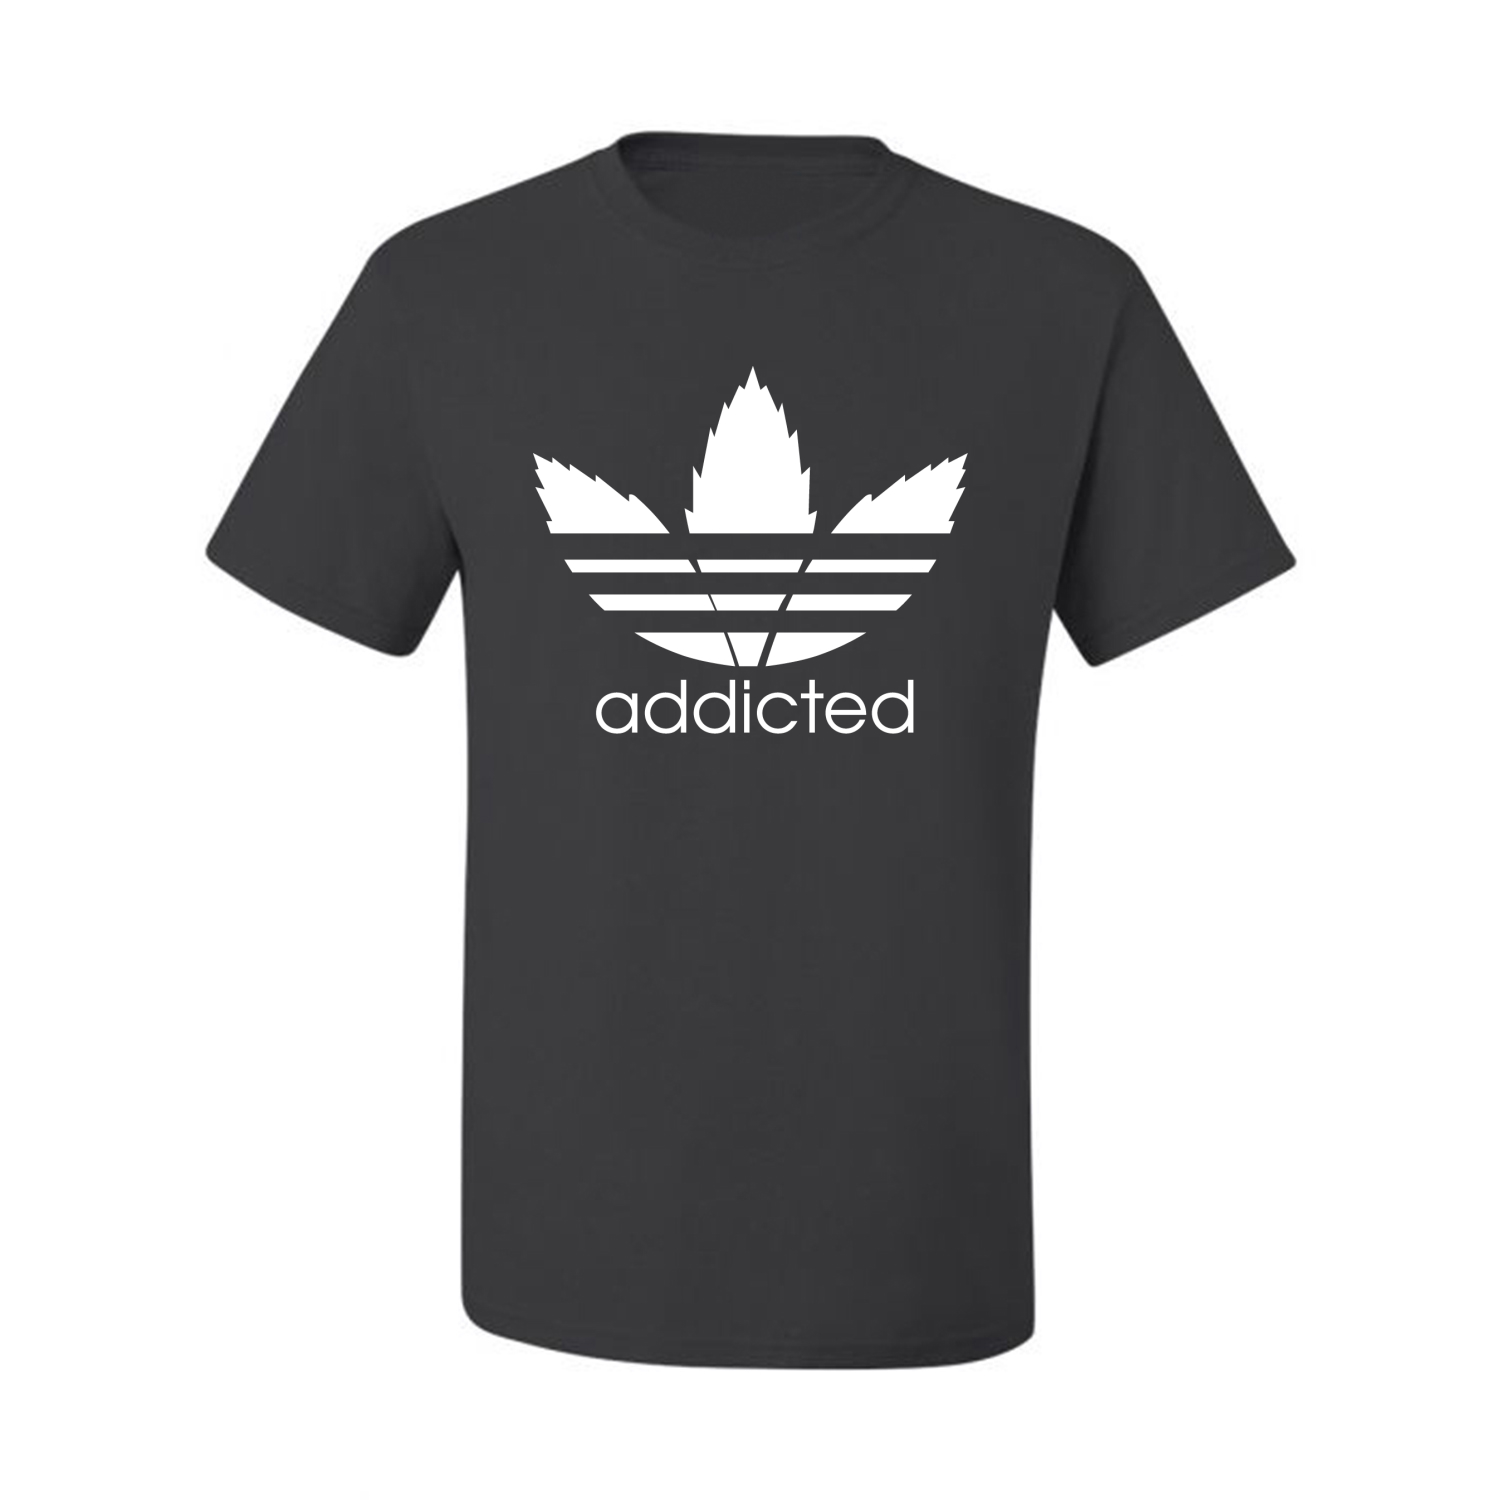 Addicted-White-Pot-Leaf-Mens-Weed-T-Shirt-Graphic-Parody-Tee thumbnail 6